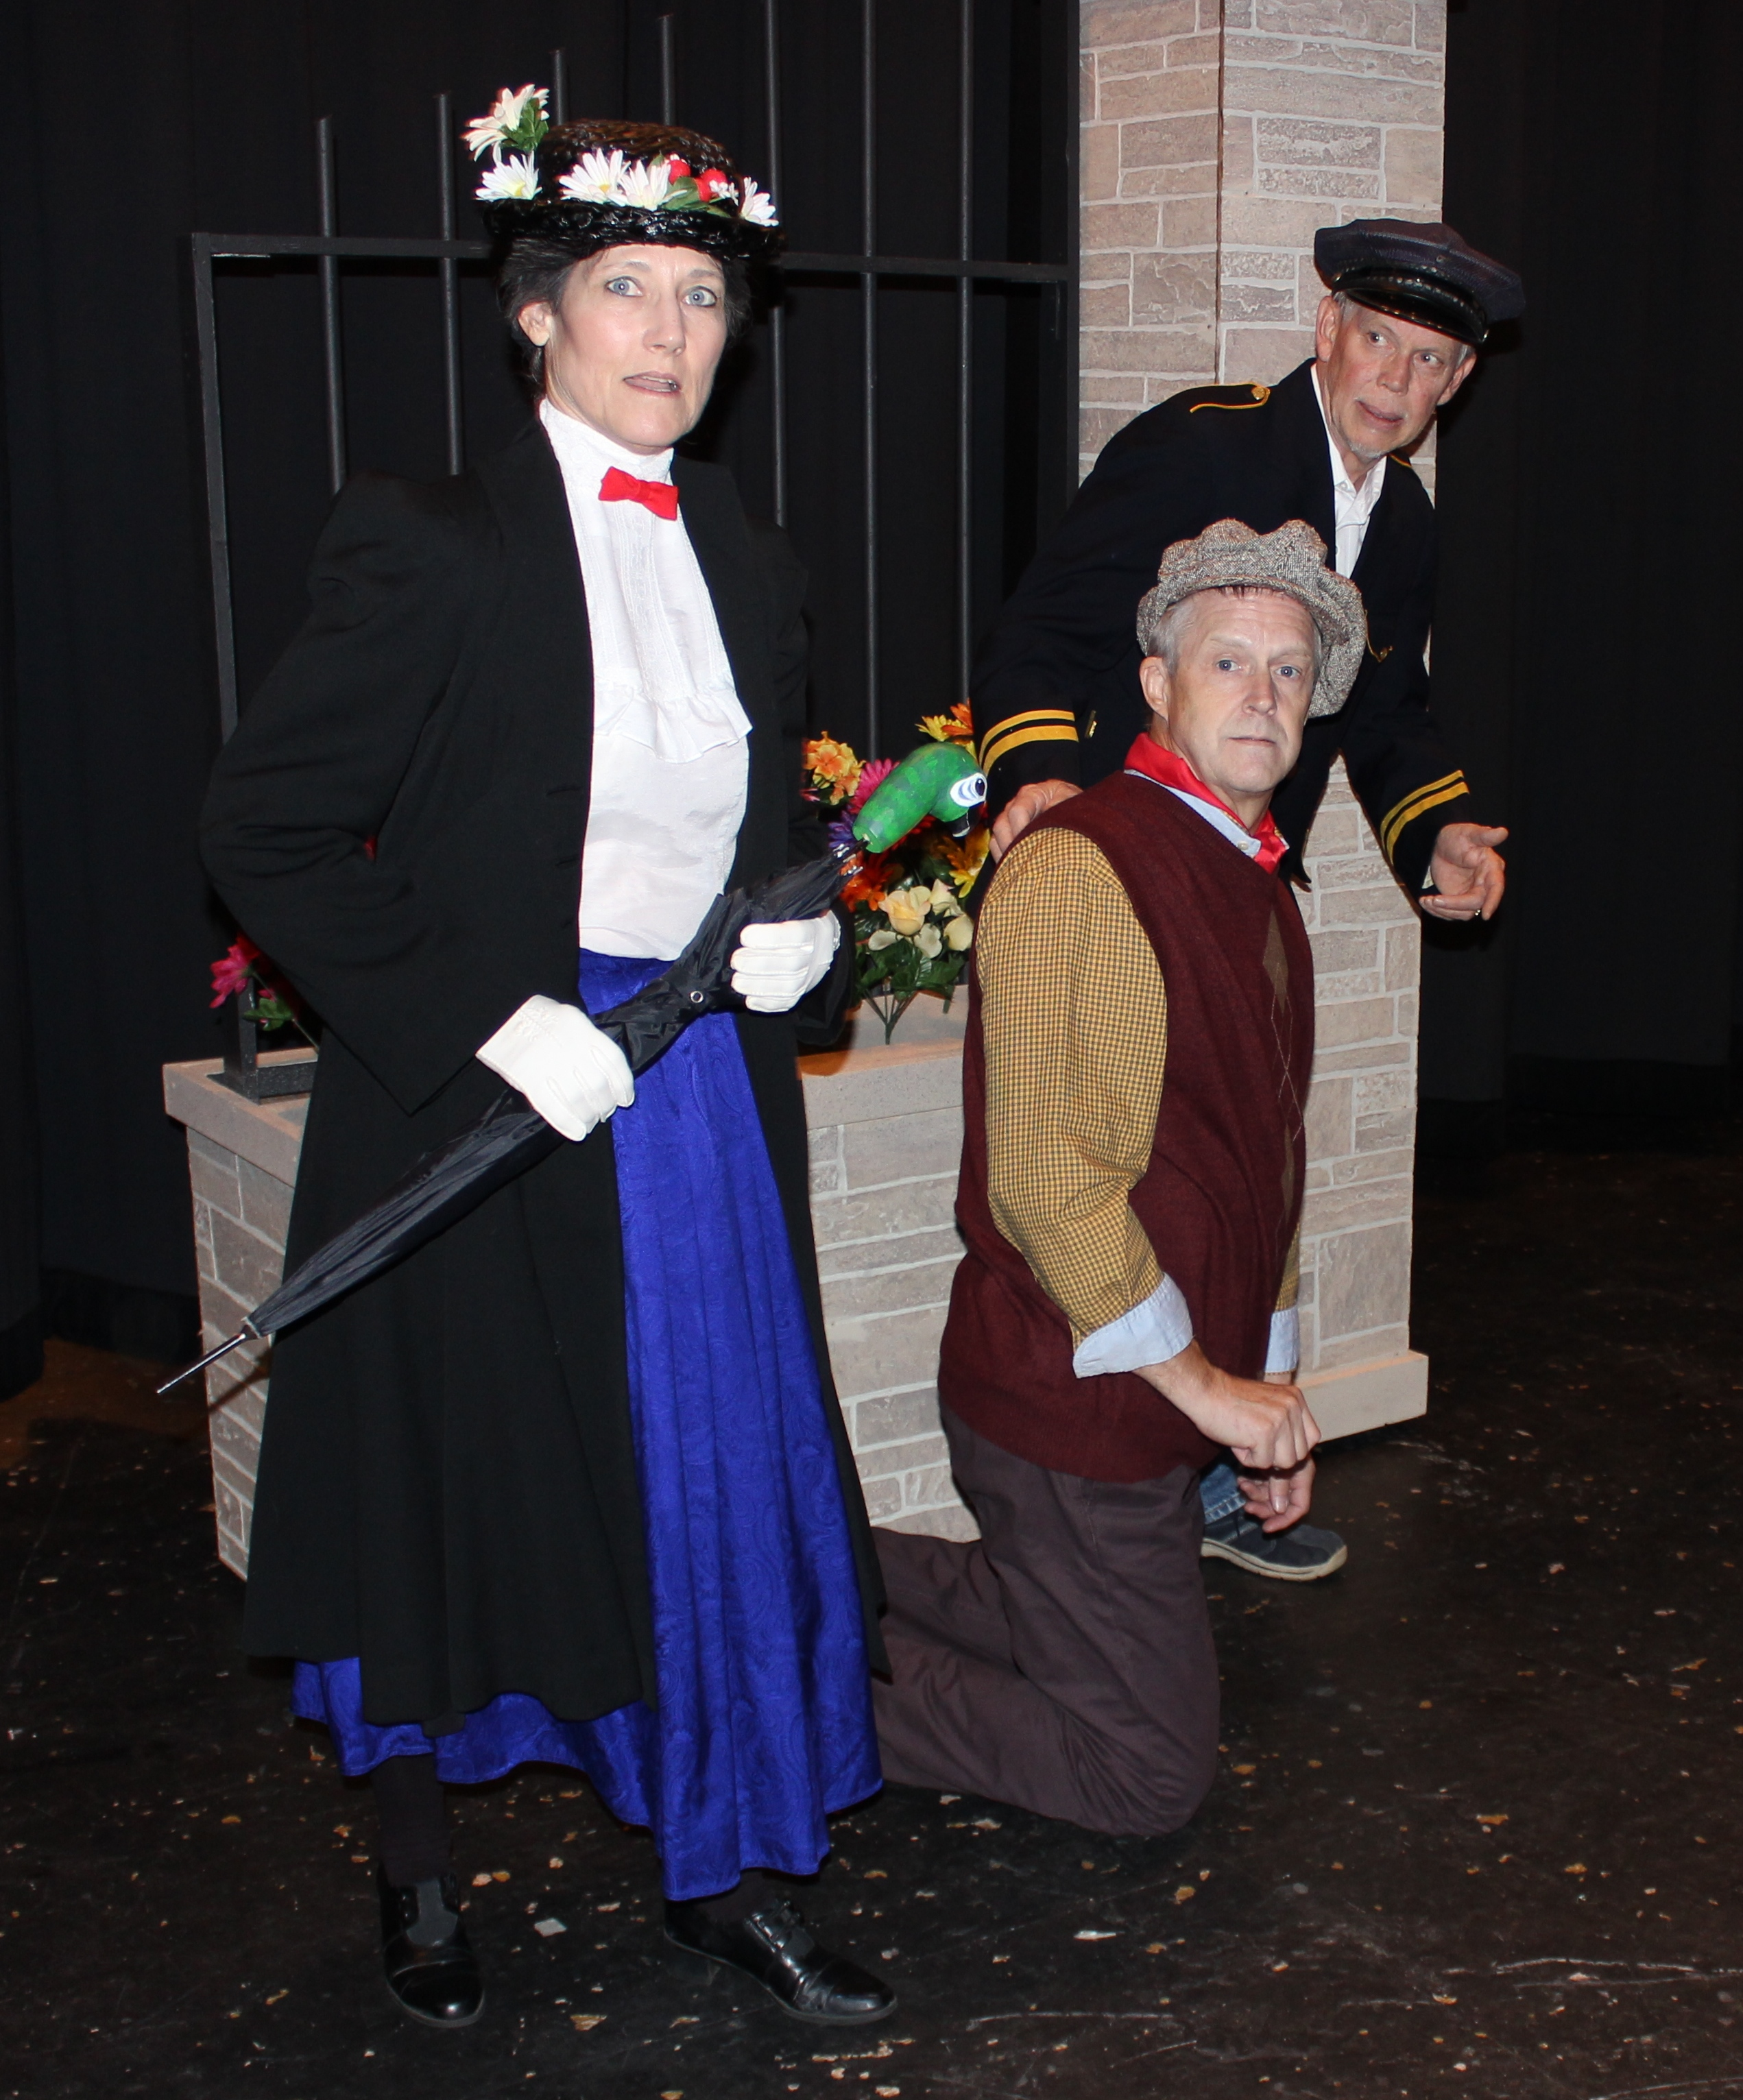 Mary Poppins, Bert, Park Keeper